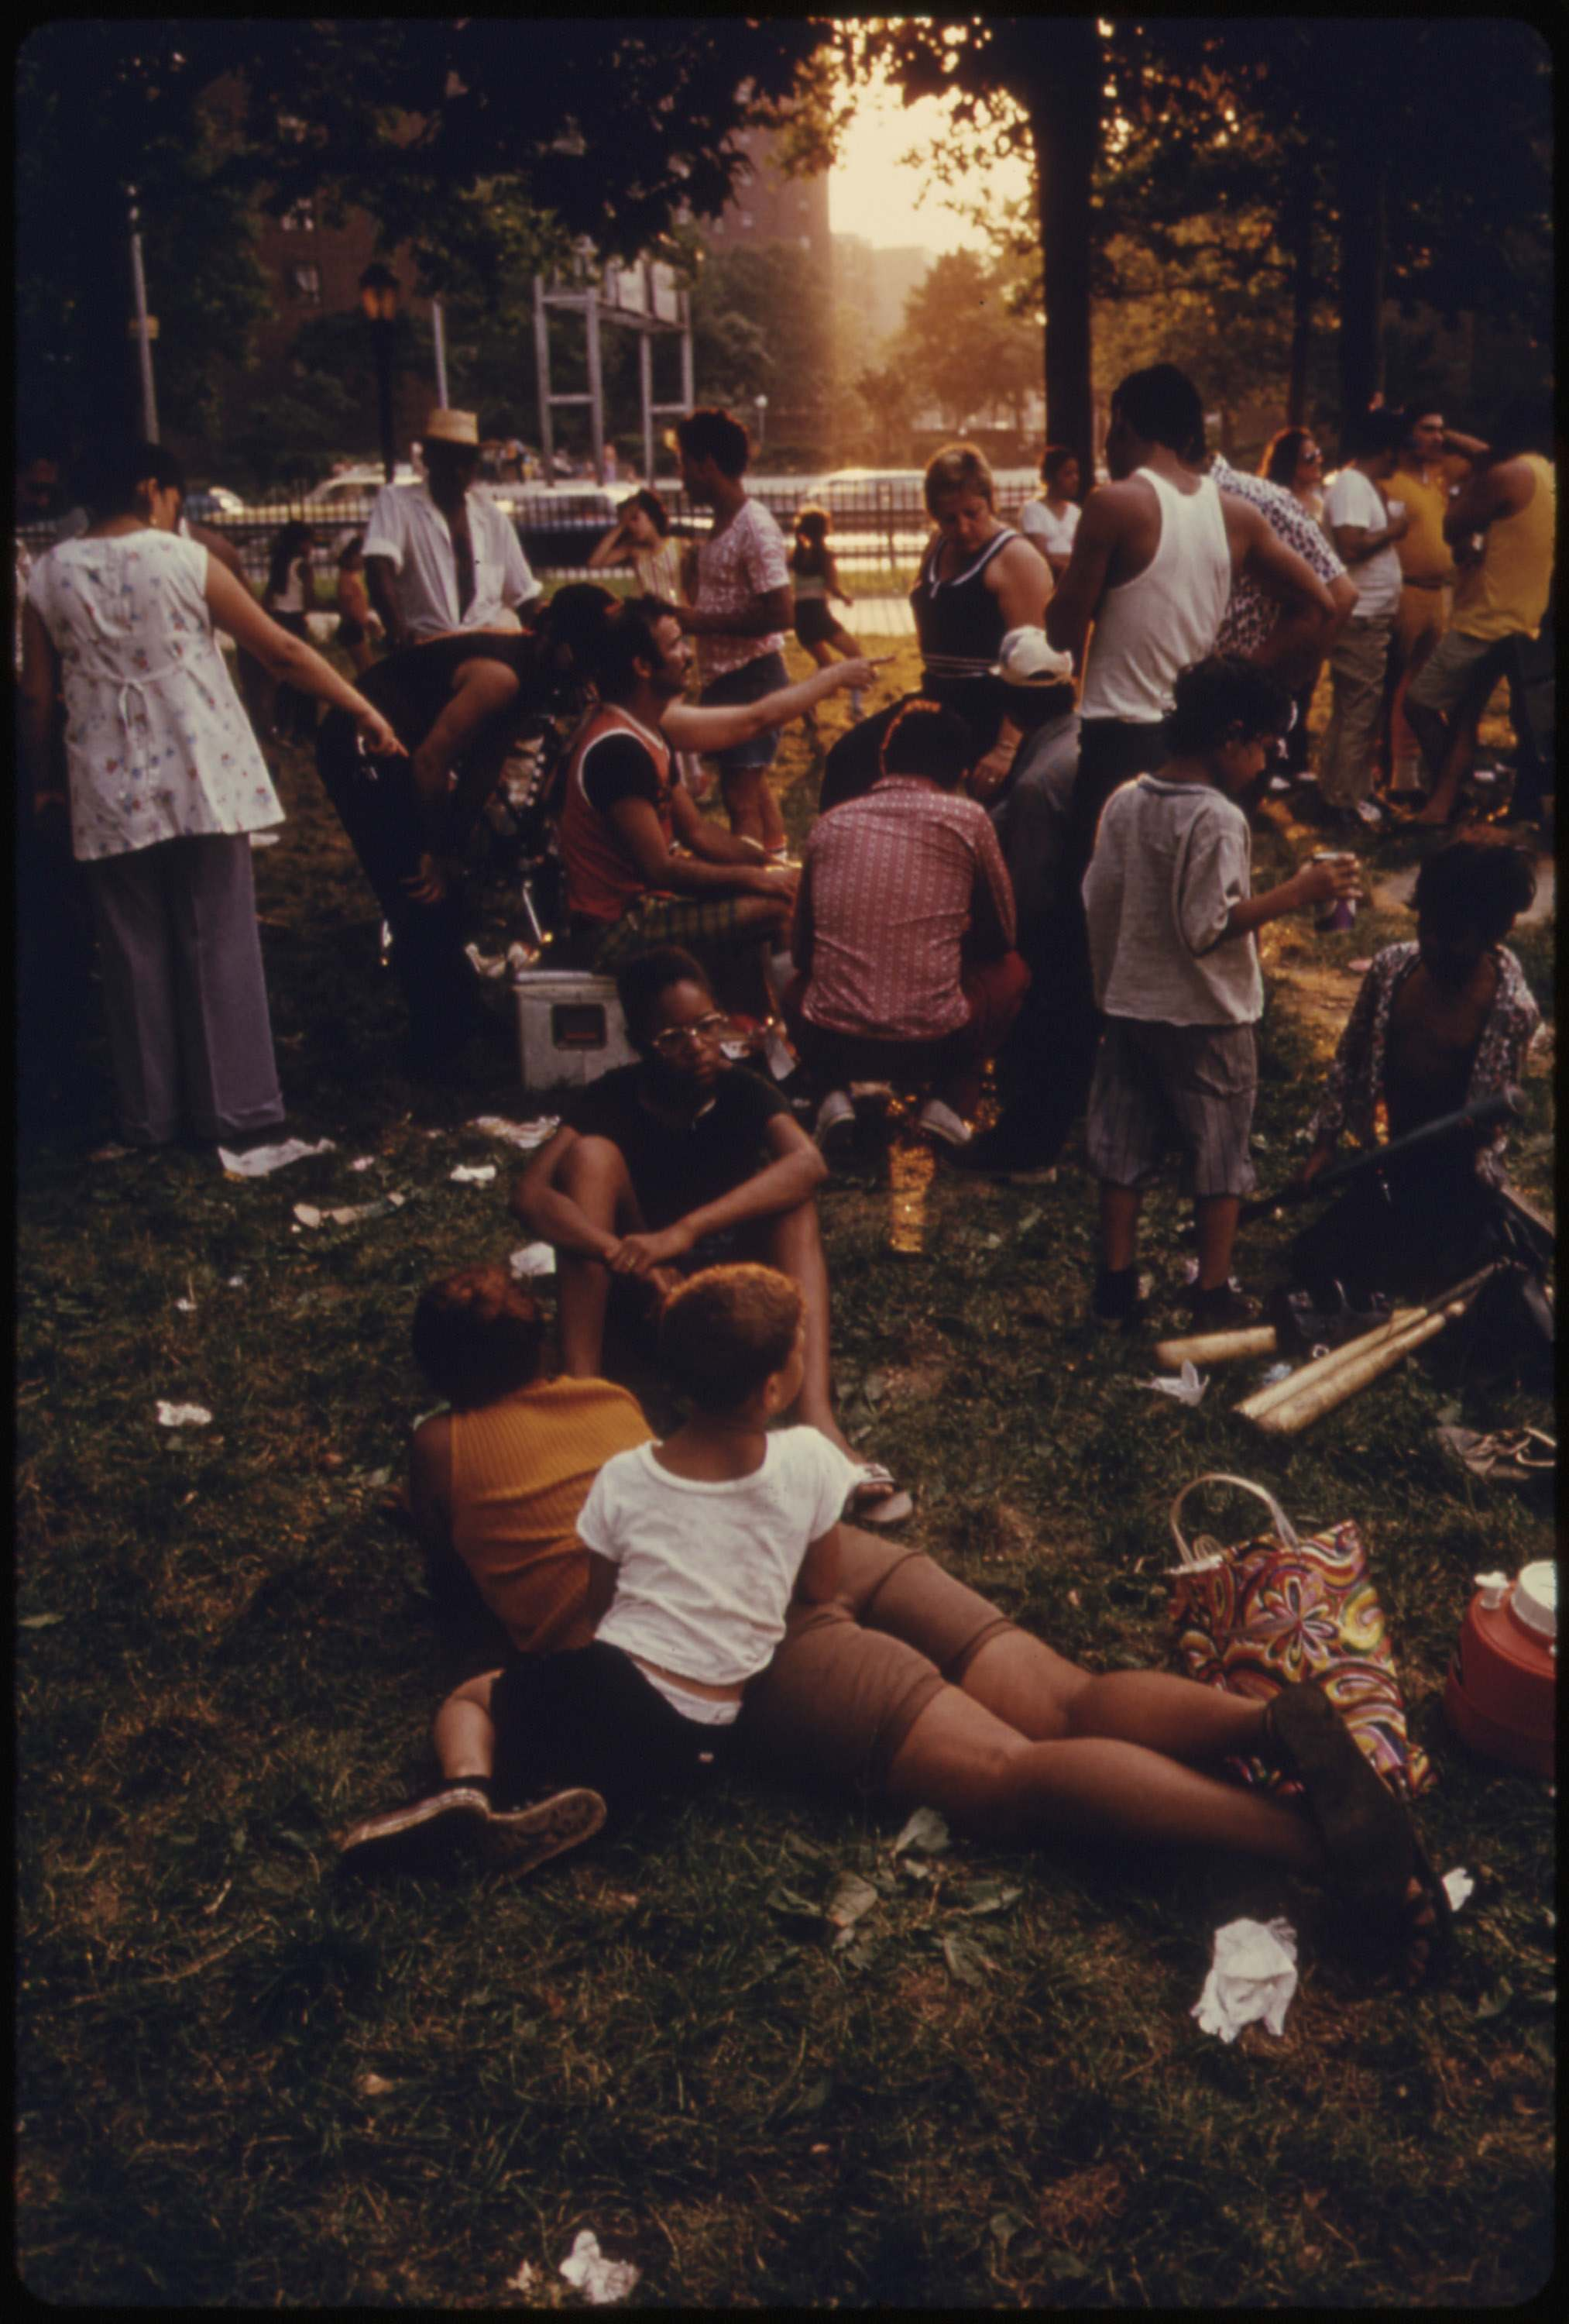 East River Park in Manhattan, July 1974.Documerica: Danny Lyon's Photos of New York City in the Summer of 1974